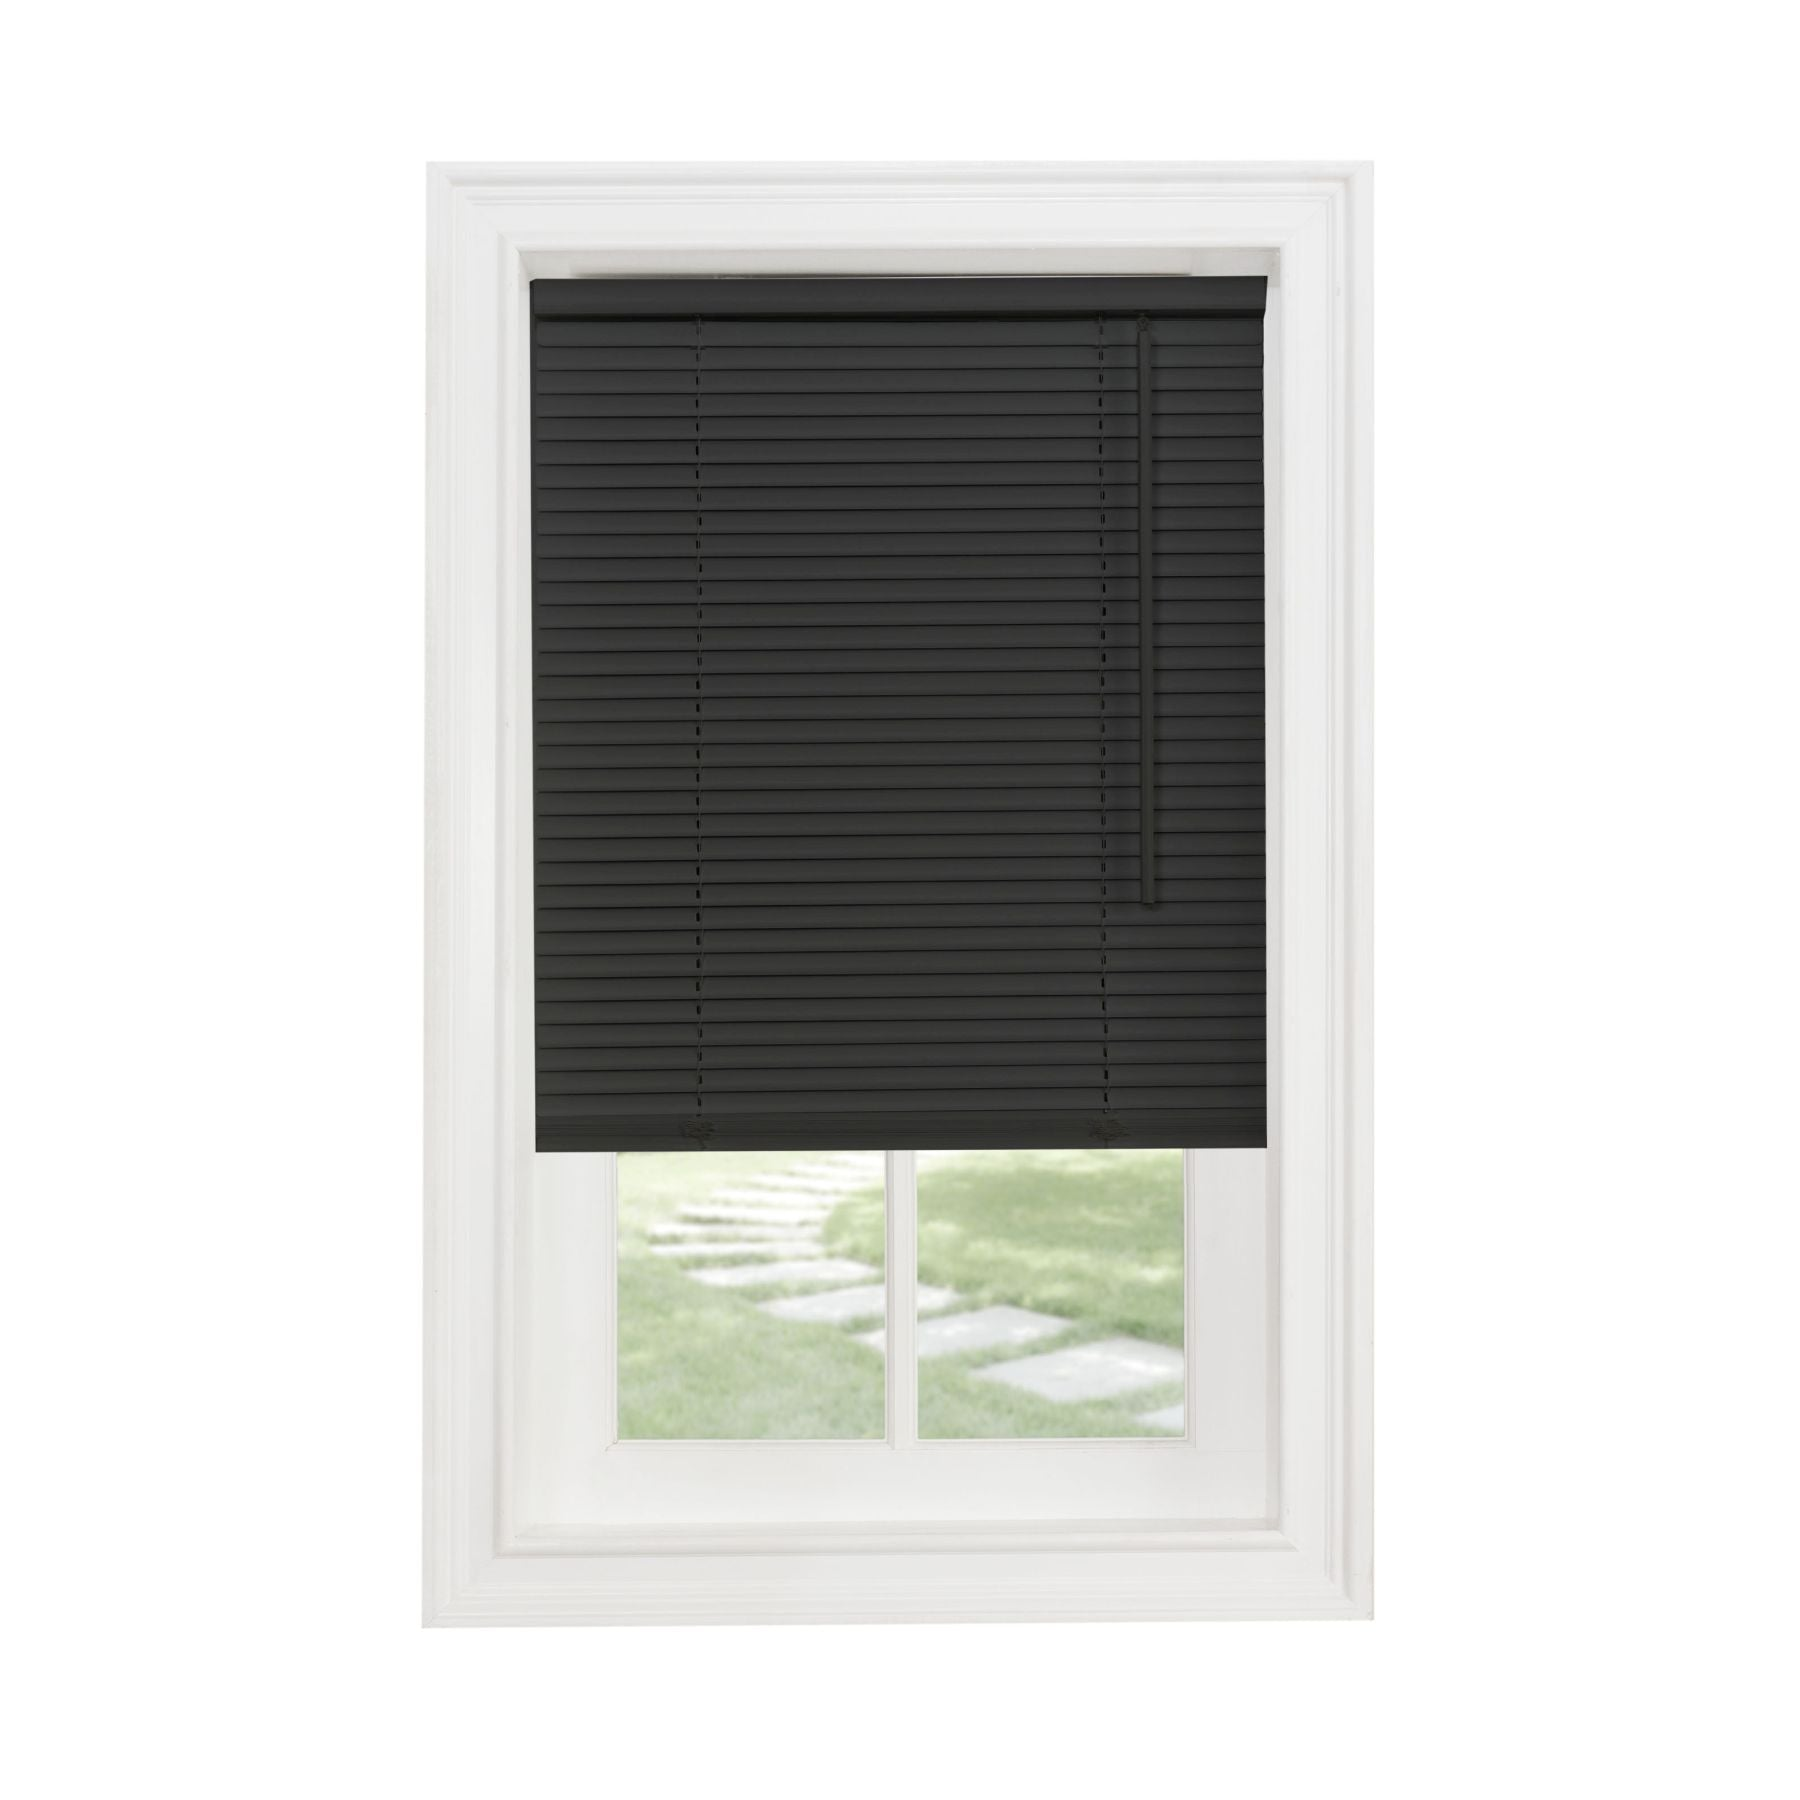 "Traditional Elegance Cordless Sunrise 1"" Light Filtering Mini Blind 31x64 - Black"